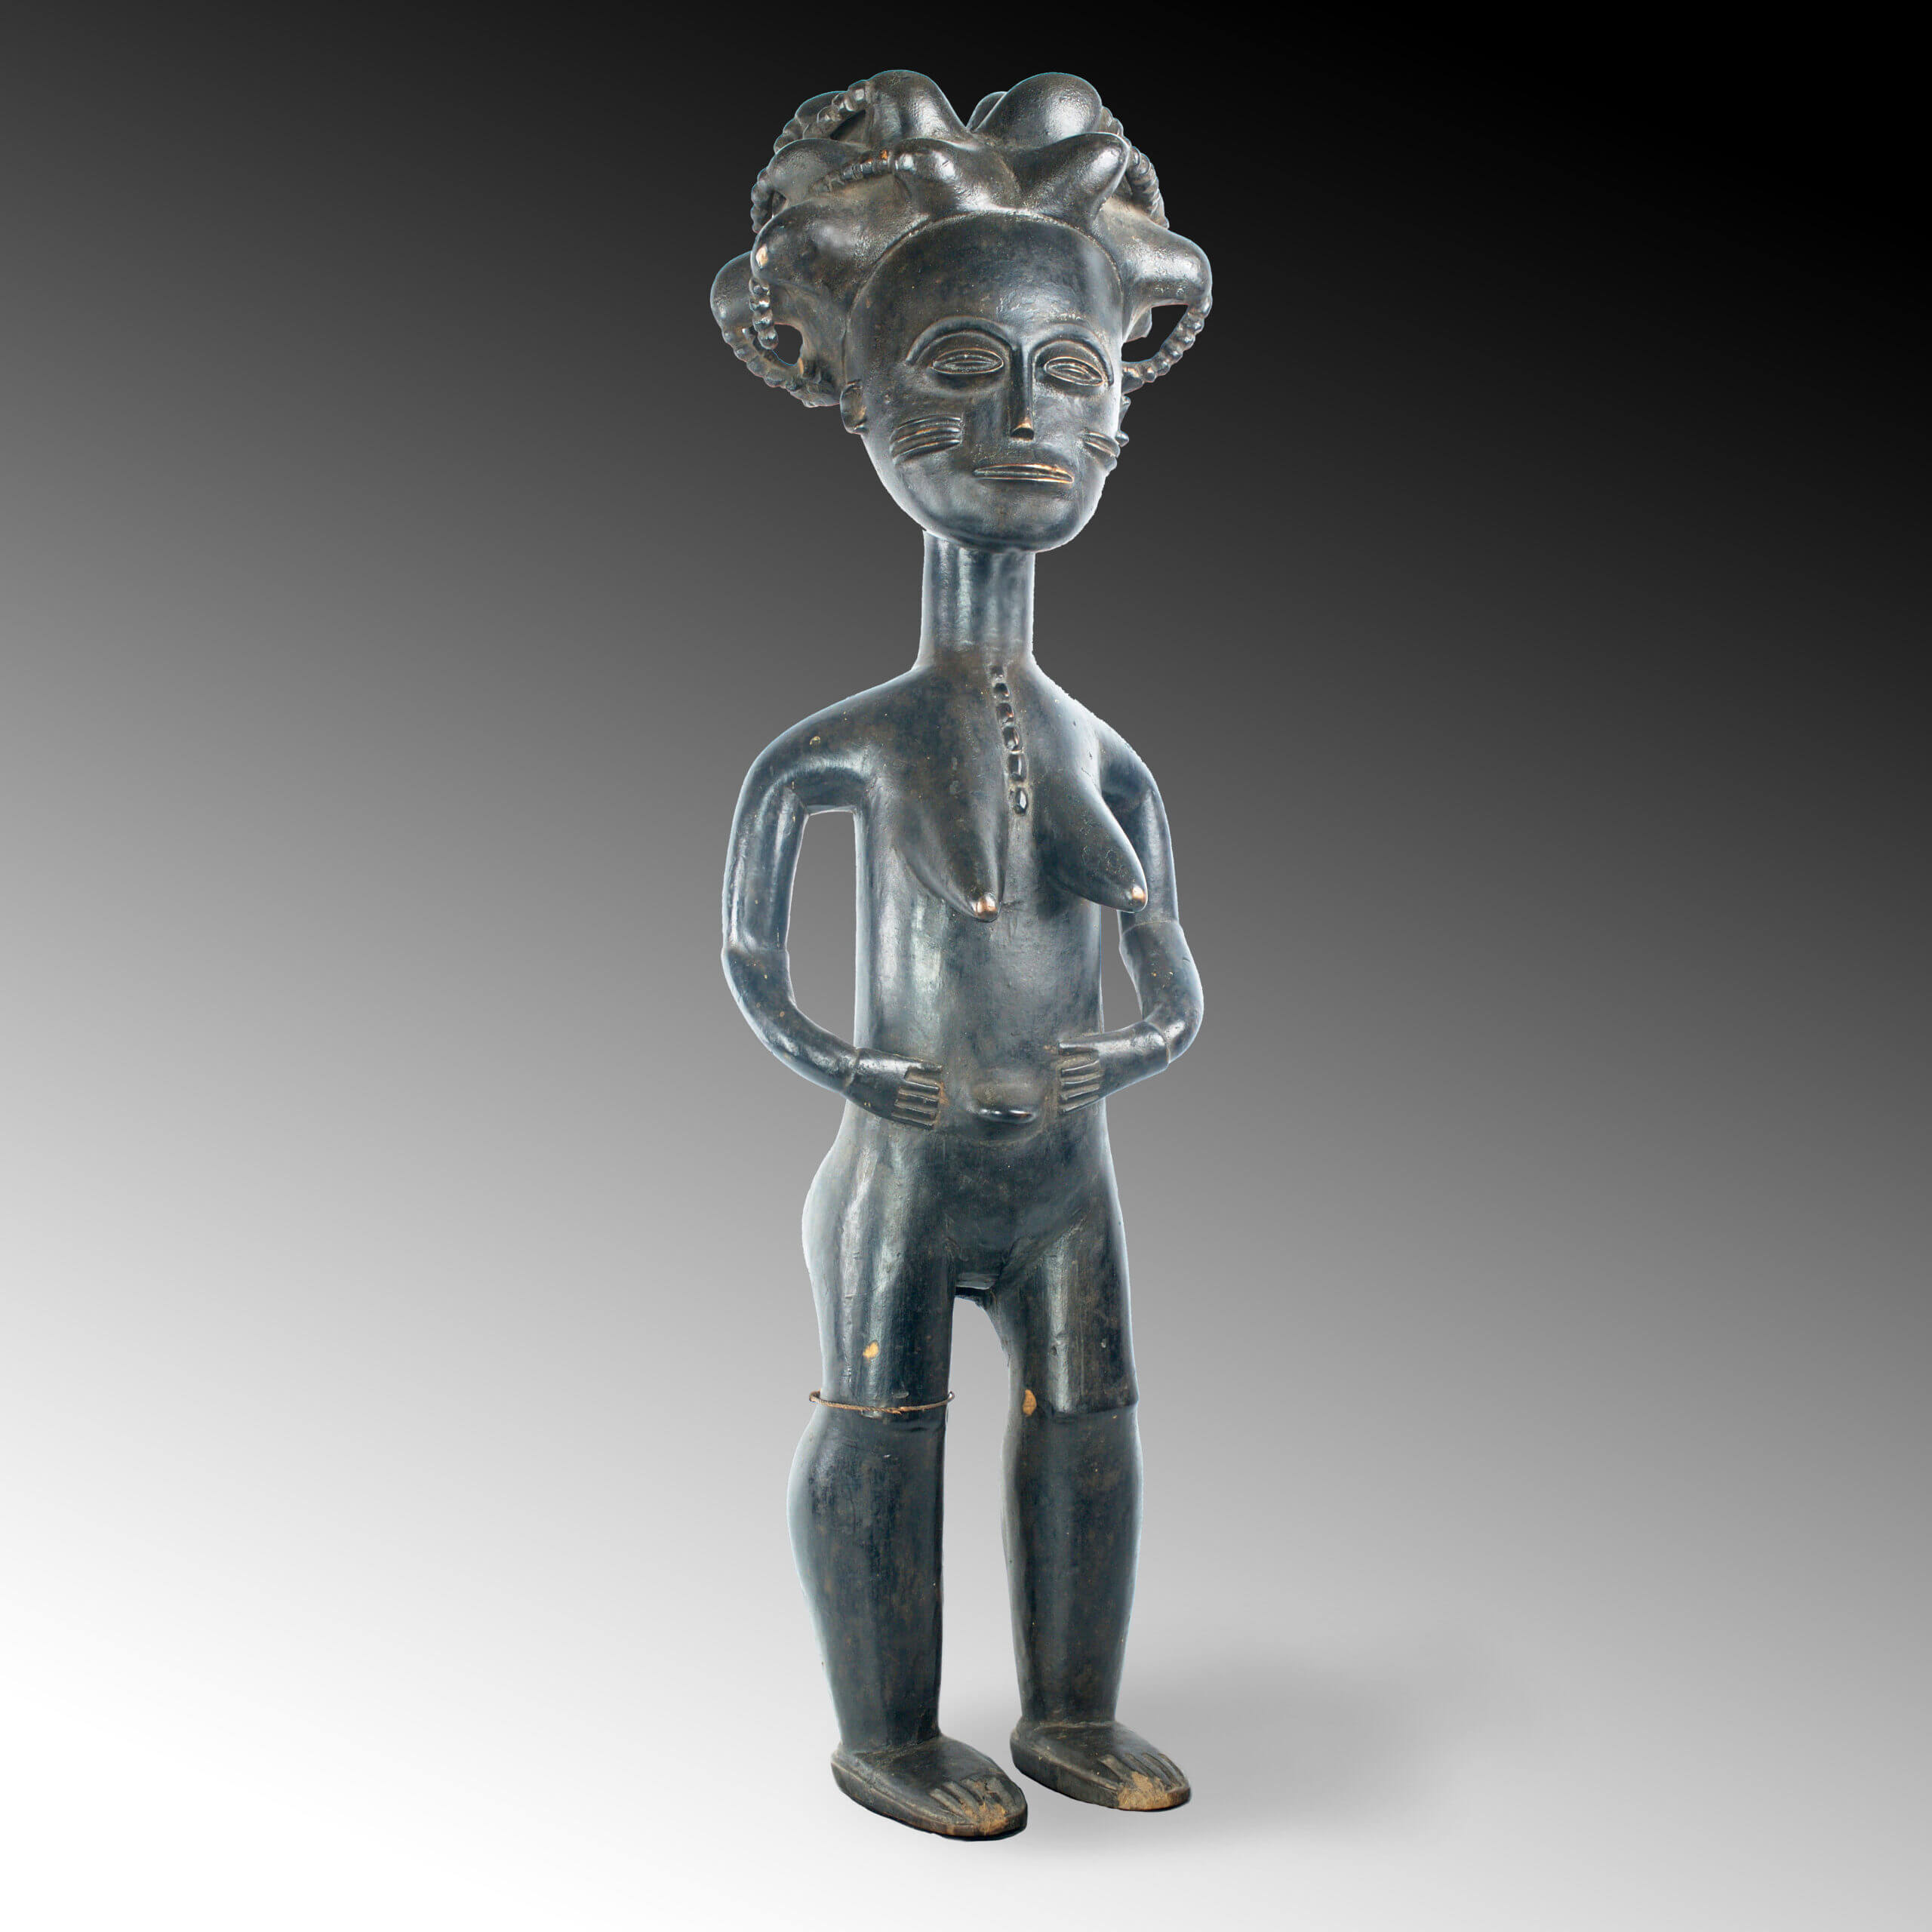 An Akan figure